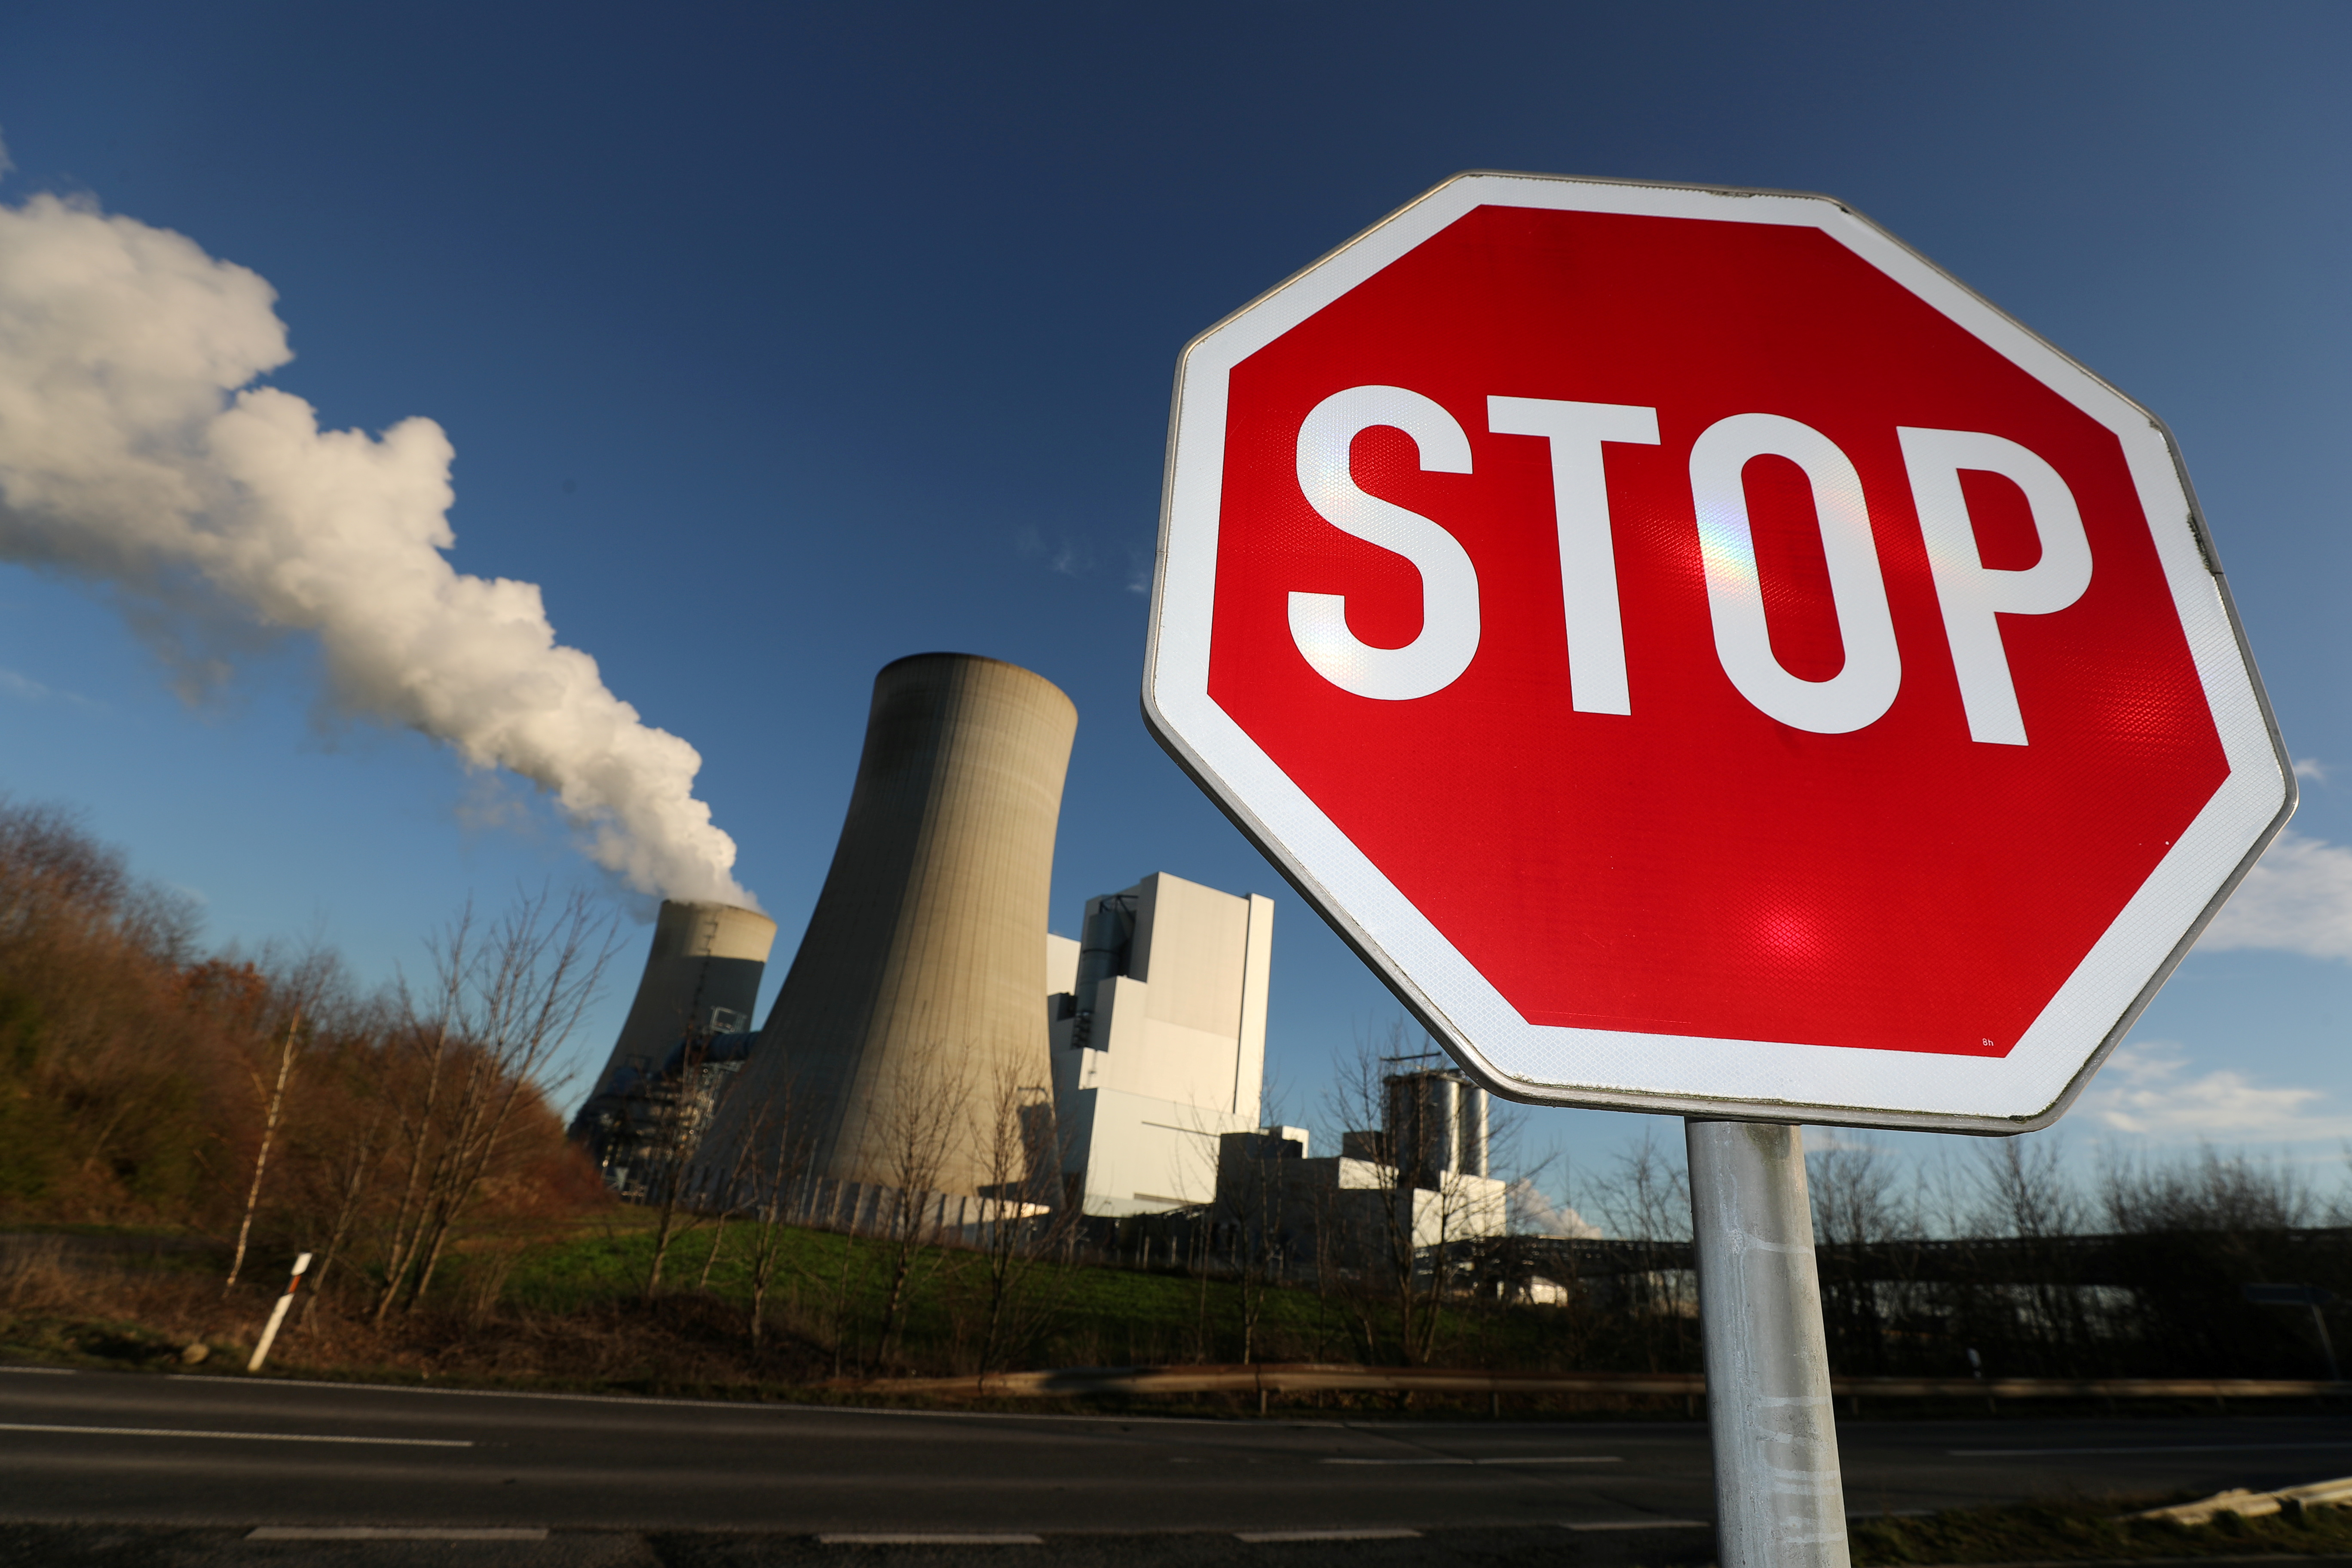 A Stop sign stands in front of the Neurath lignite power plant of German utility RWE, west of Cologne, Germany, January 16, 2020. REUTERS/Wolfgang Rattay/File Photo